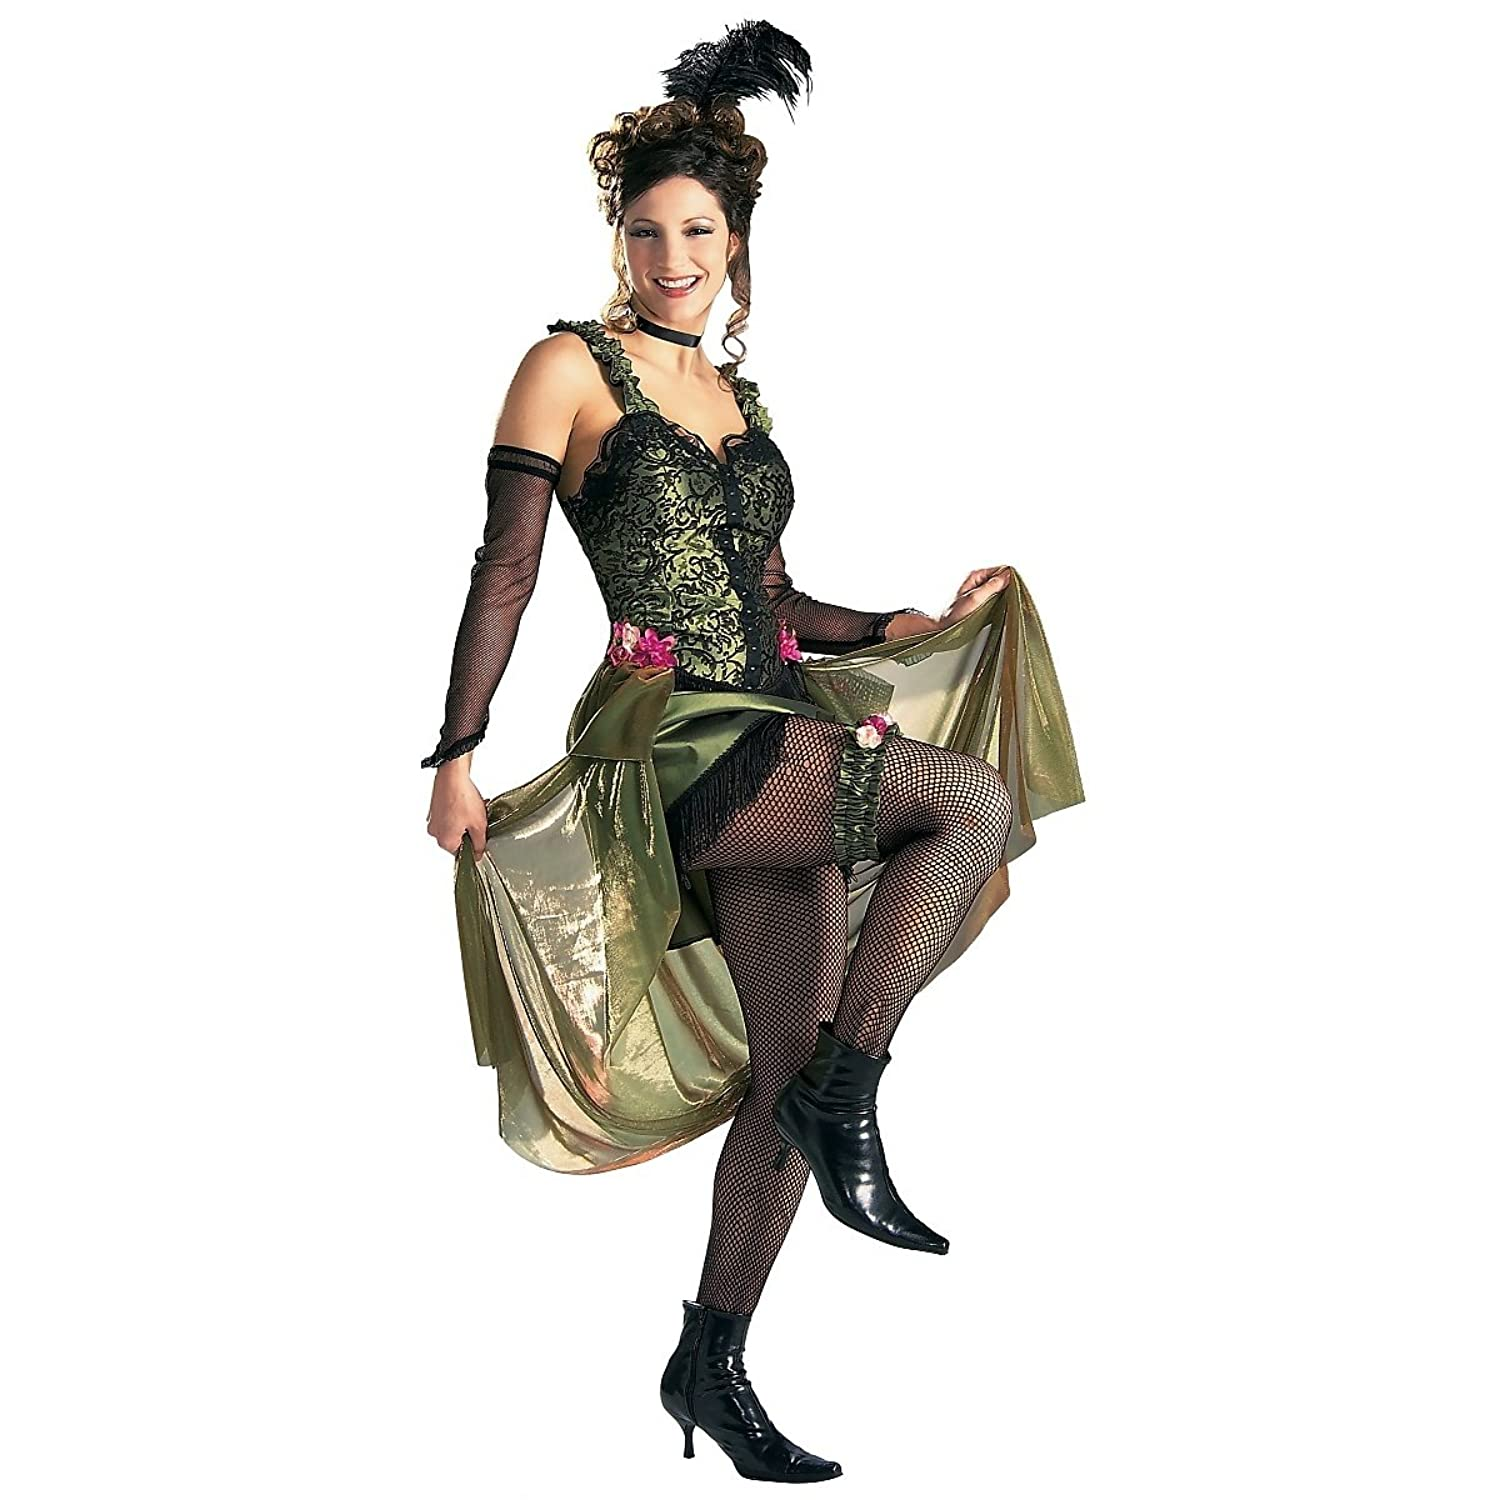 Victorian Costumes: Dresses, Saloon Girls, Southern Belle, Witch Grand Heritage Saloon Girl Adult Costume Green Black - Medium $108.37 AT vintagedancer.com